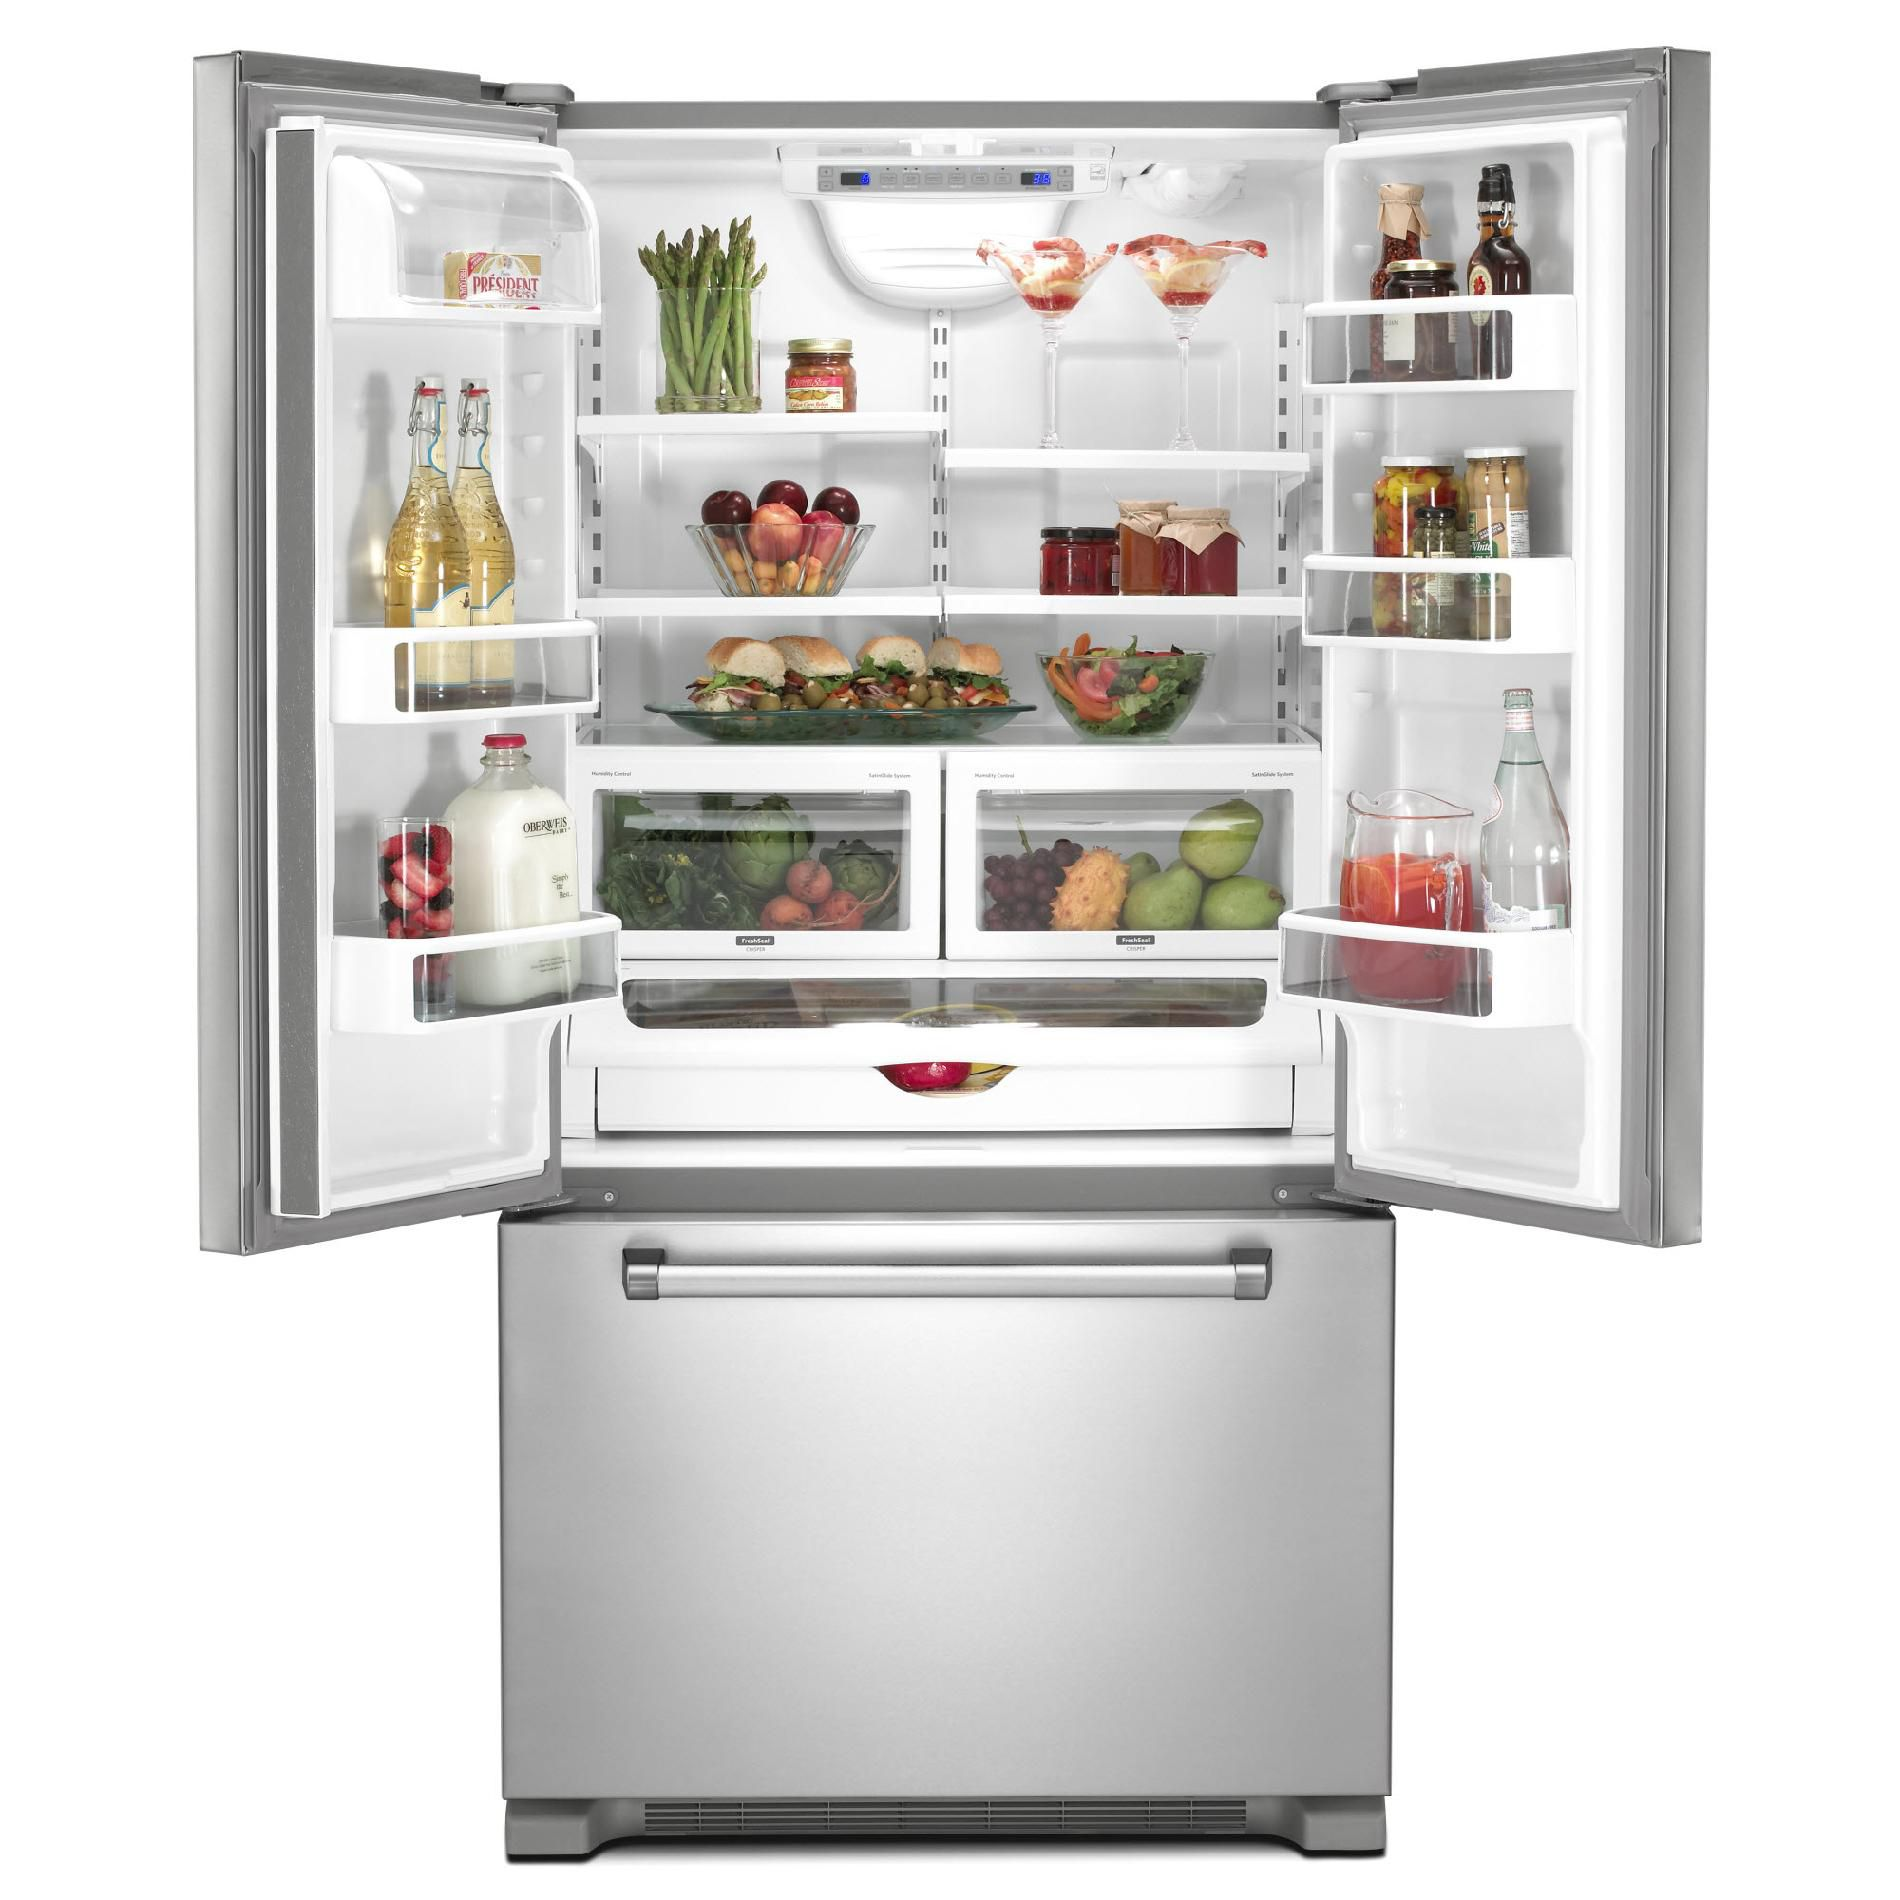 KitchenAid 21.8 cu. ft. Counter-Depth French-Door  Bottom-Freezer Refrigerator